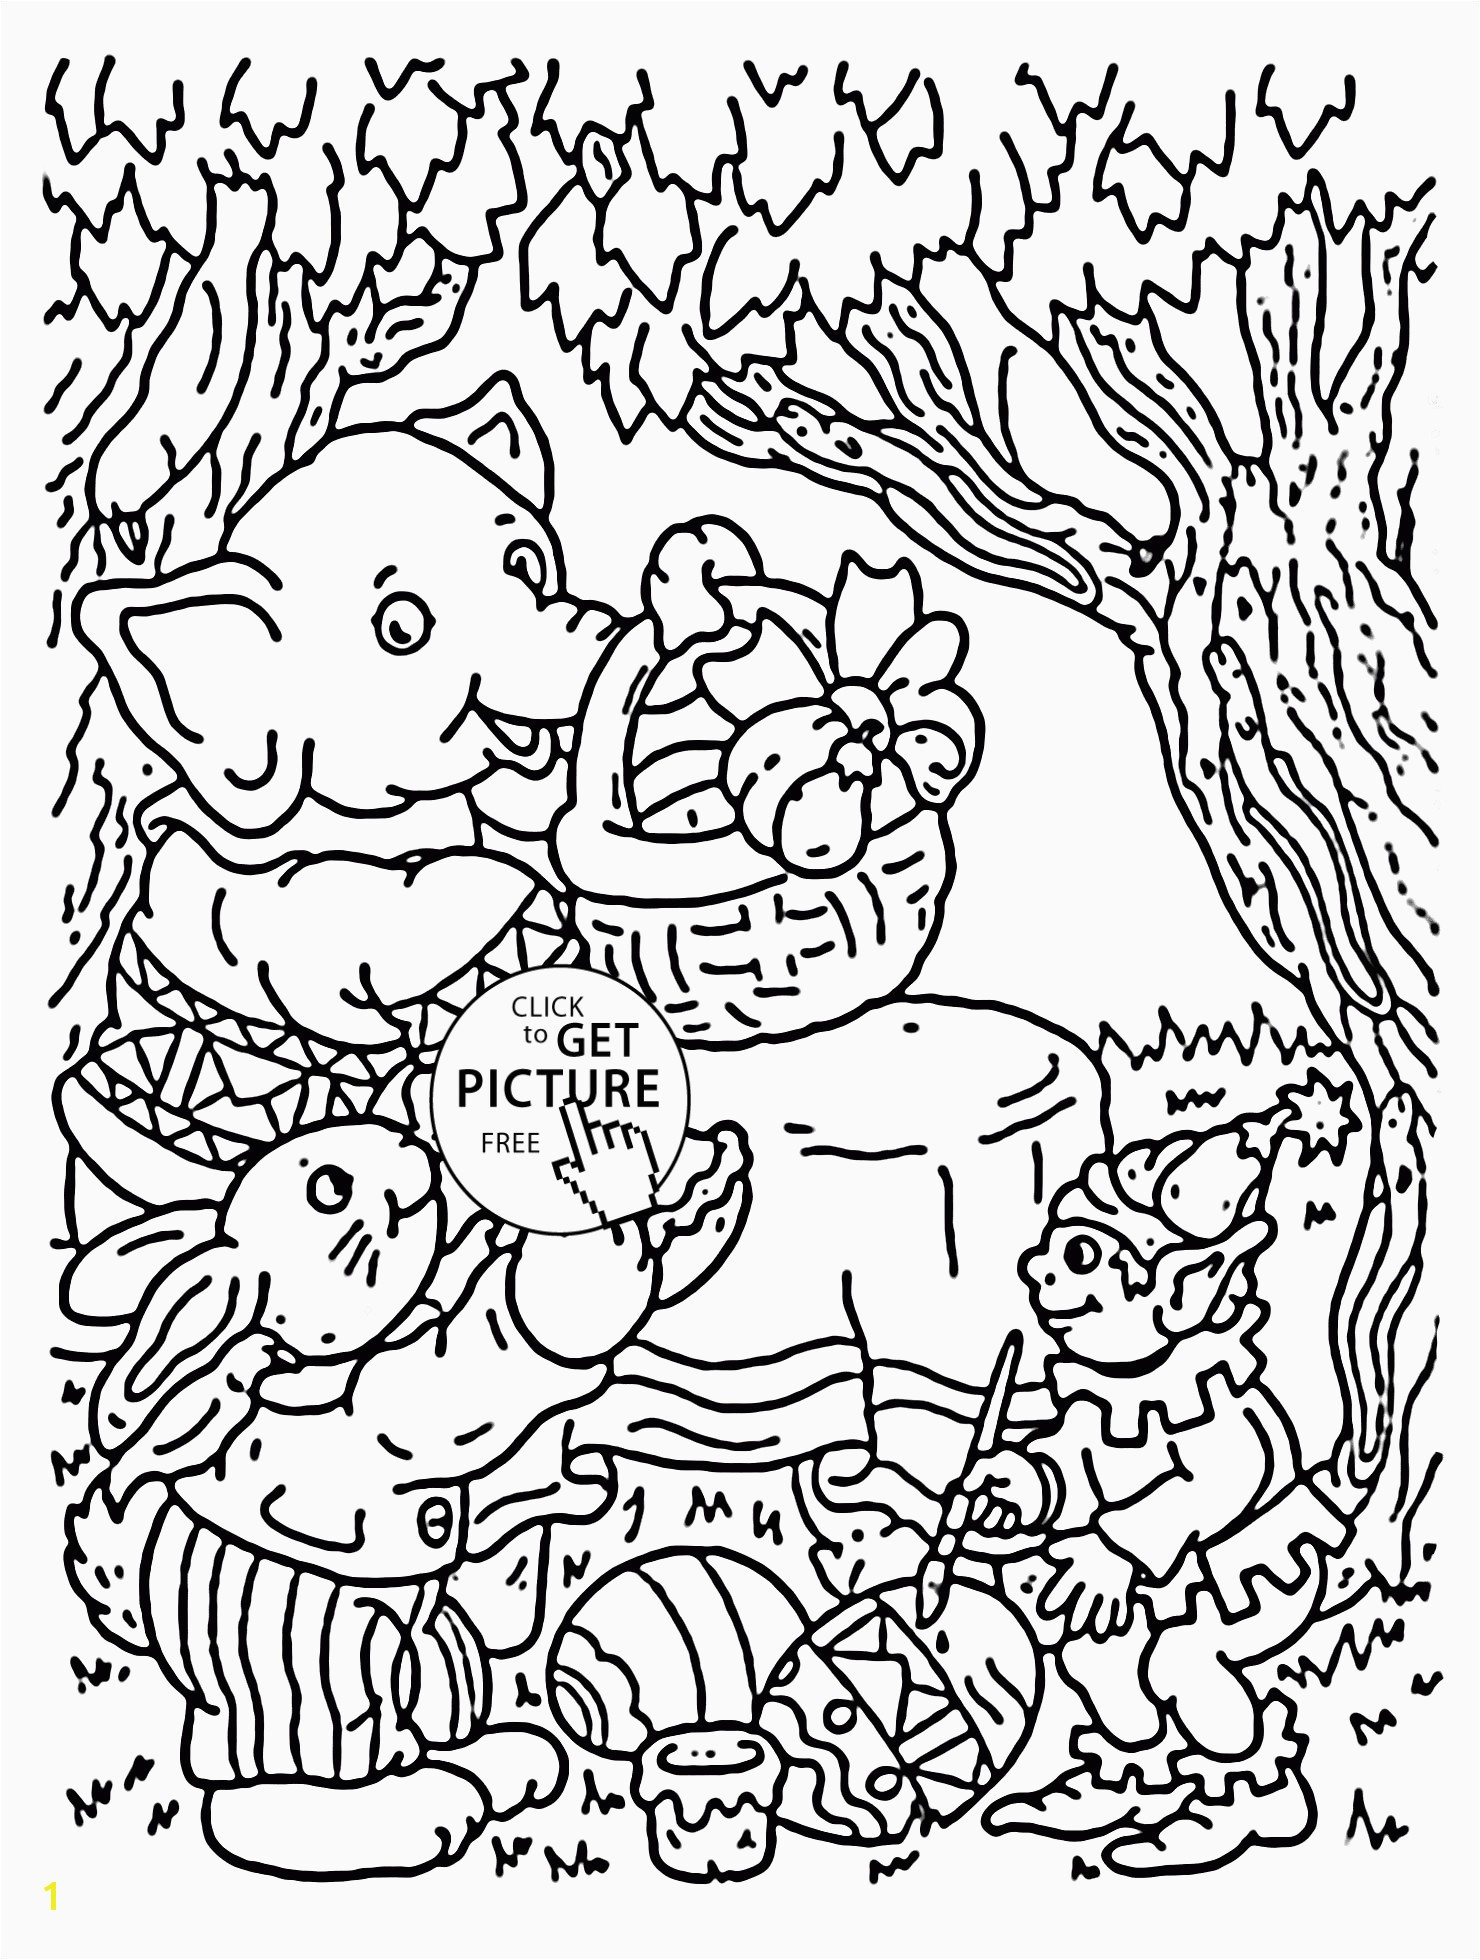 Free Printable Disney Coloring Pages Printable Coloring Book Disney Luxury Fitnesscoloring Pages 0d